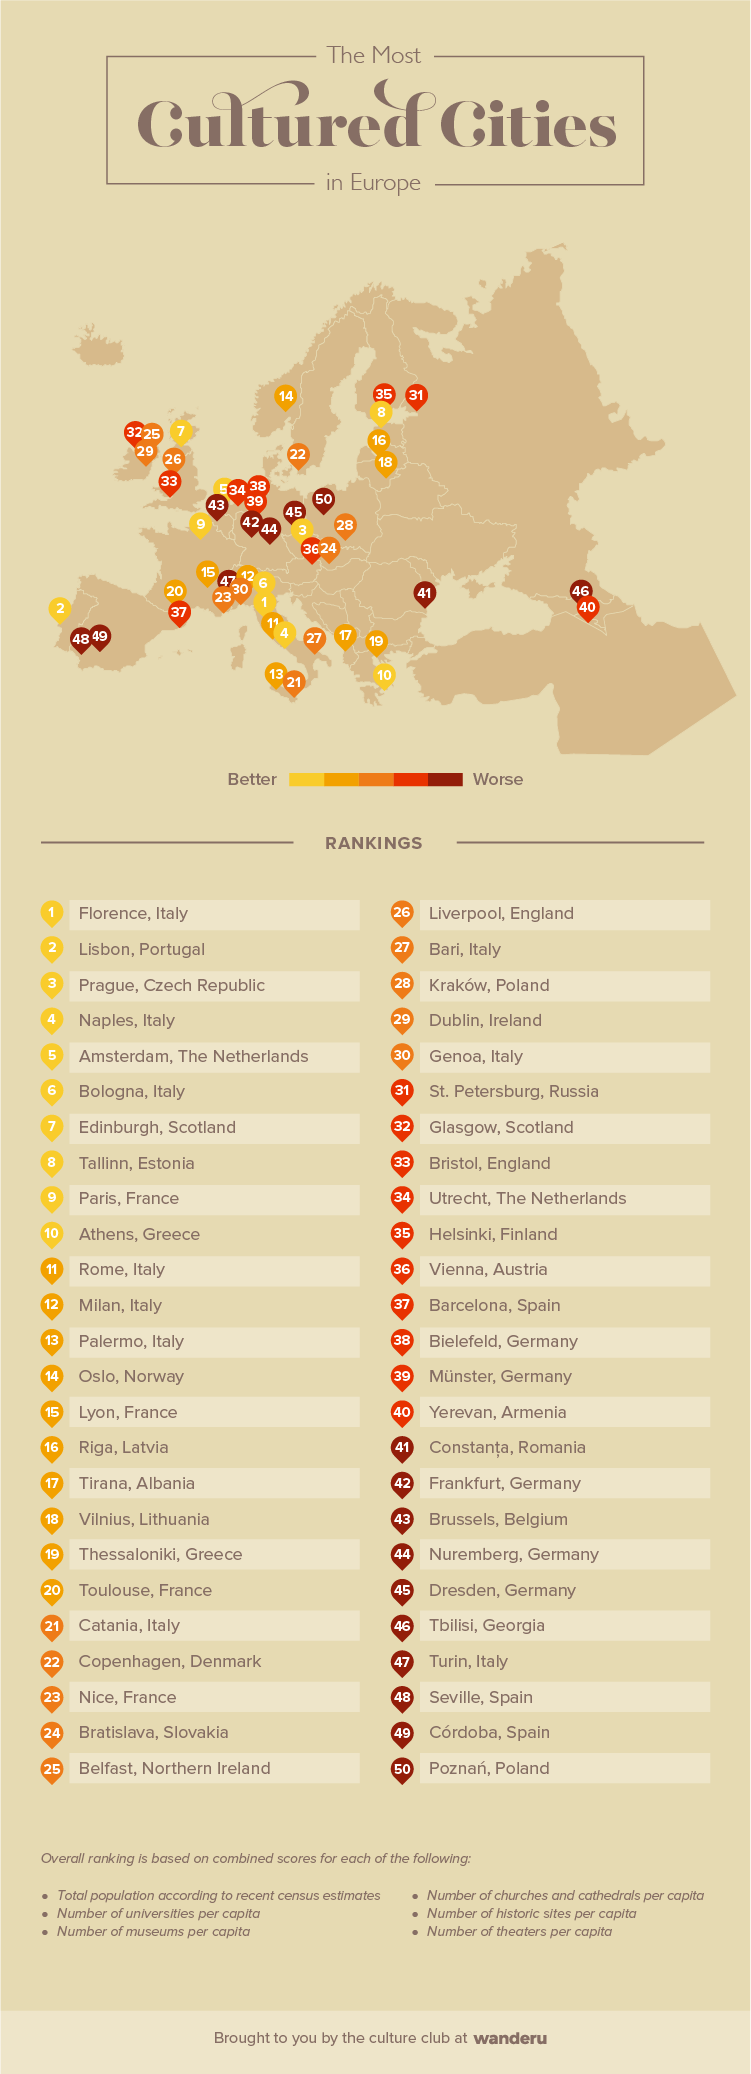 Infographic showing the 50 most cultured cities in Europe